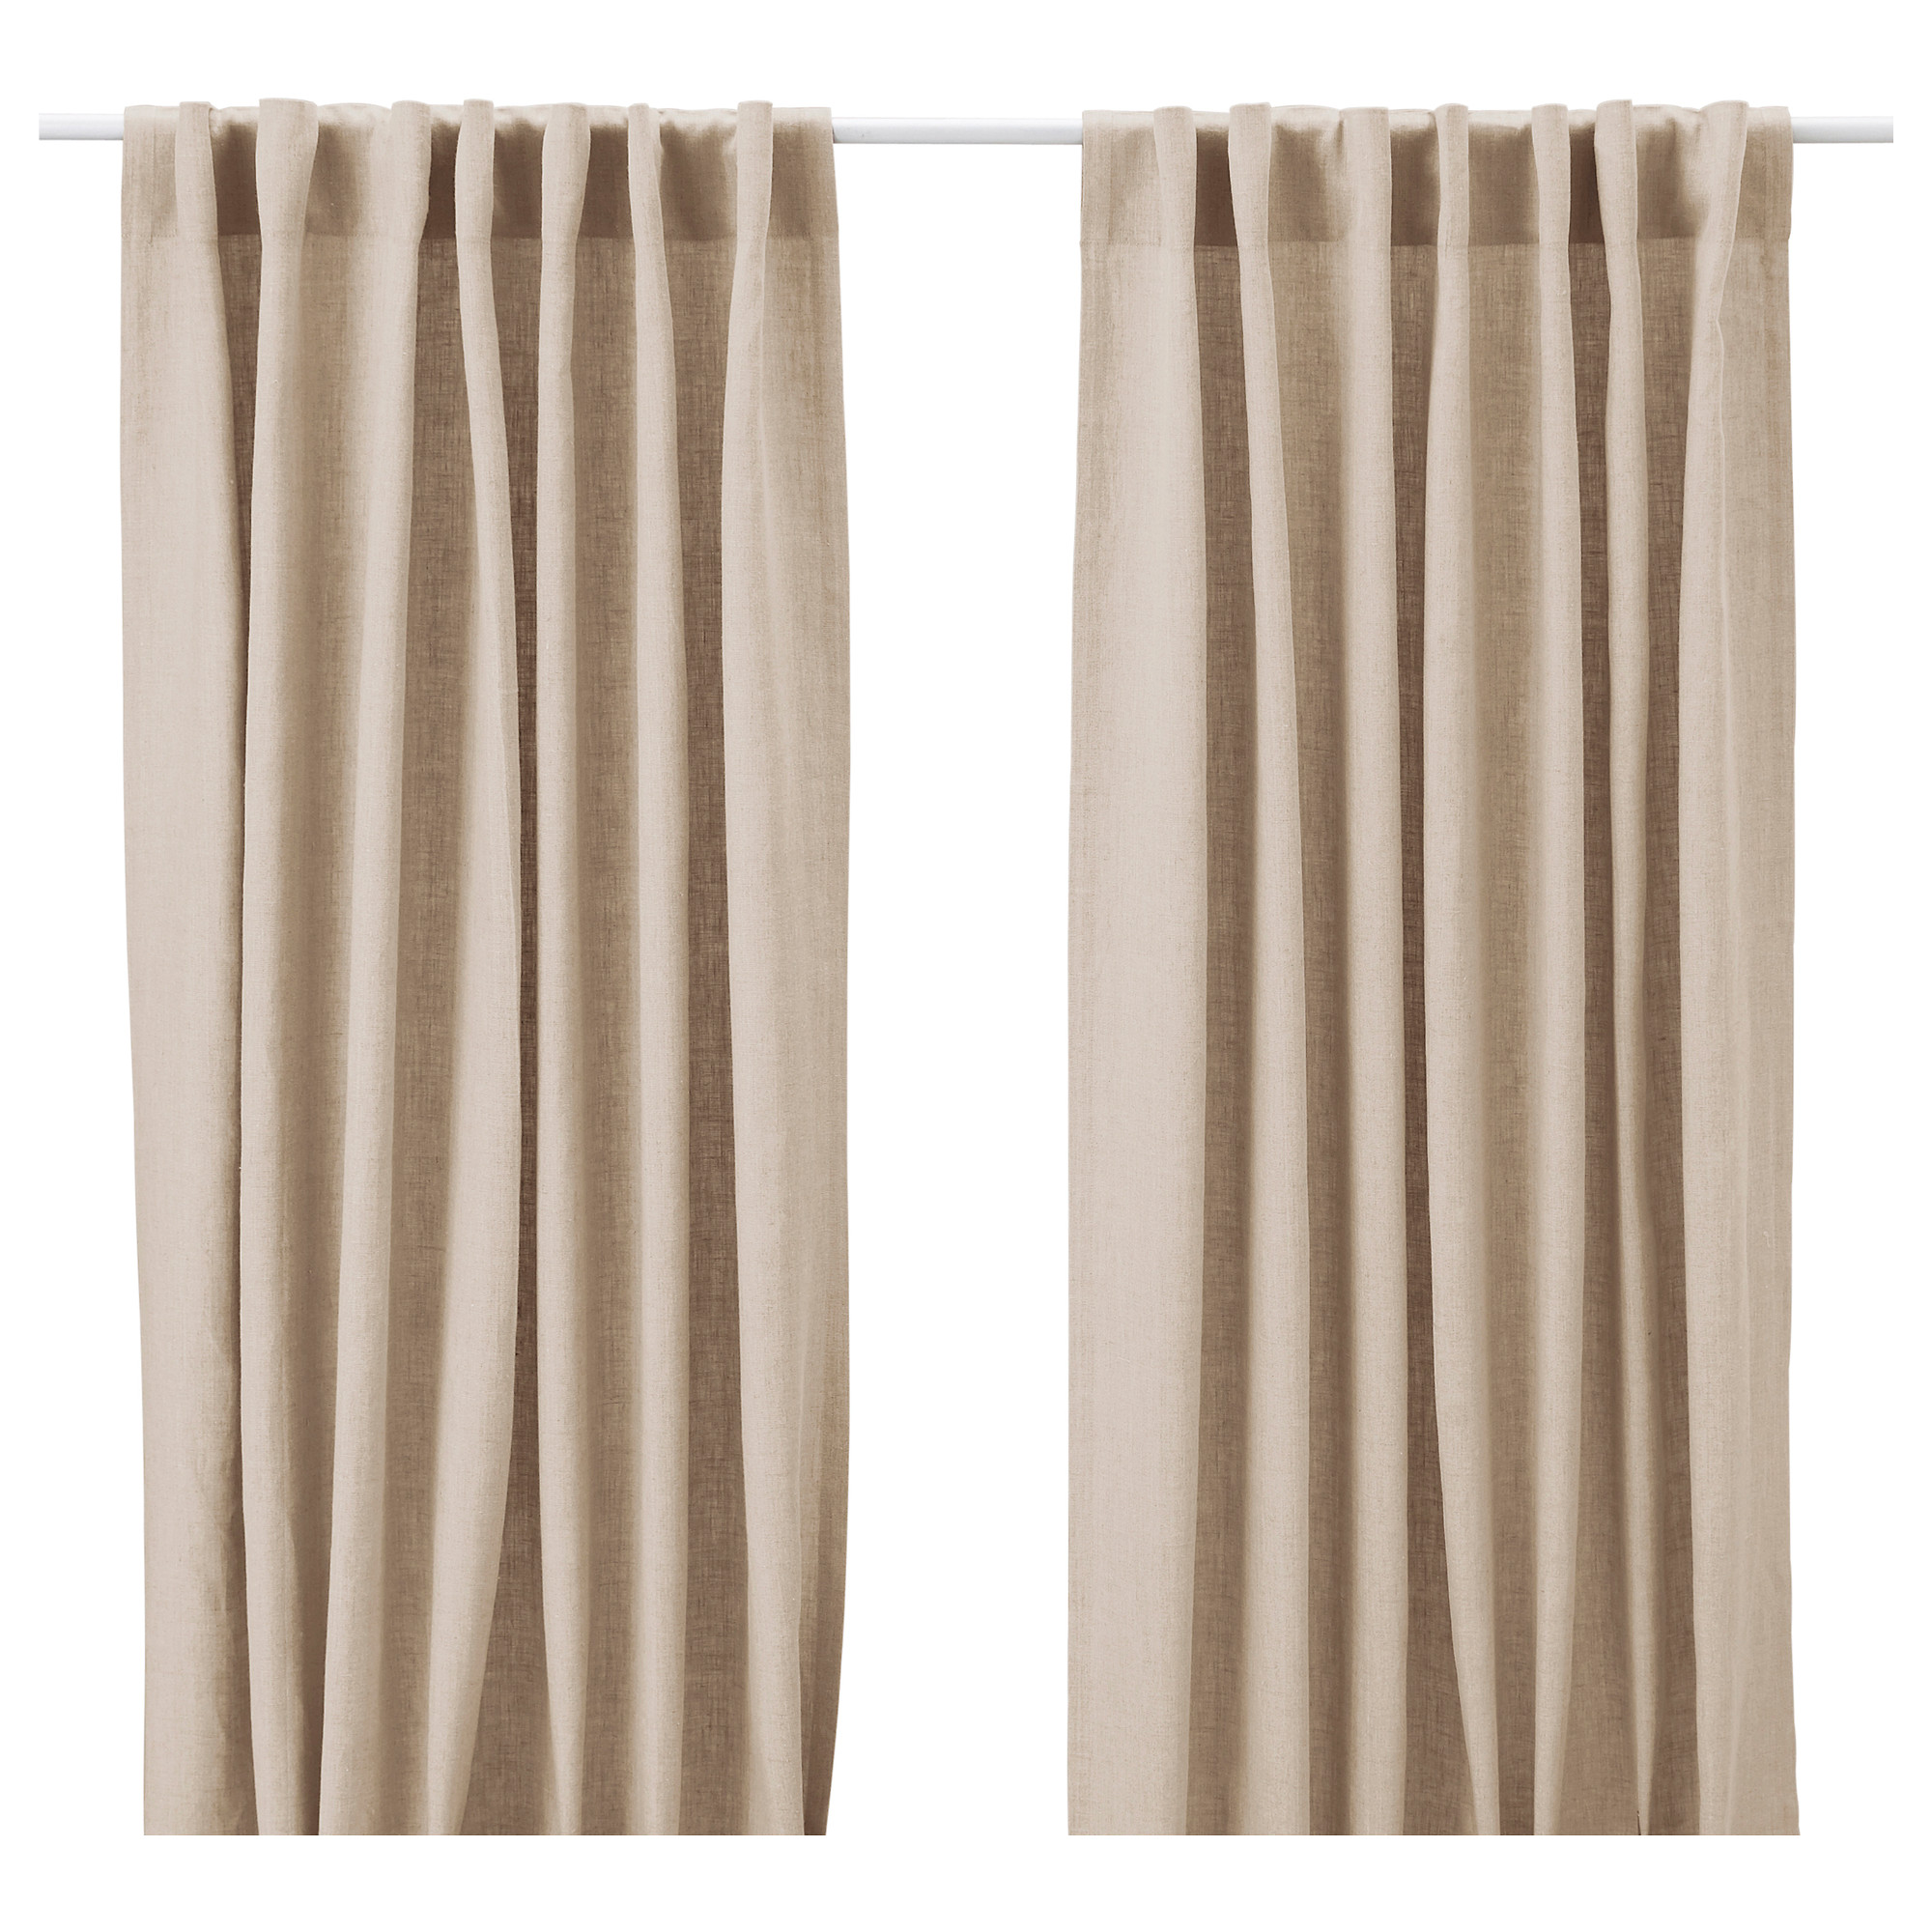 Ikea window curtains